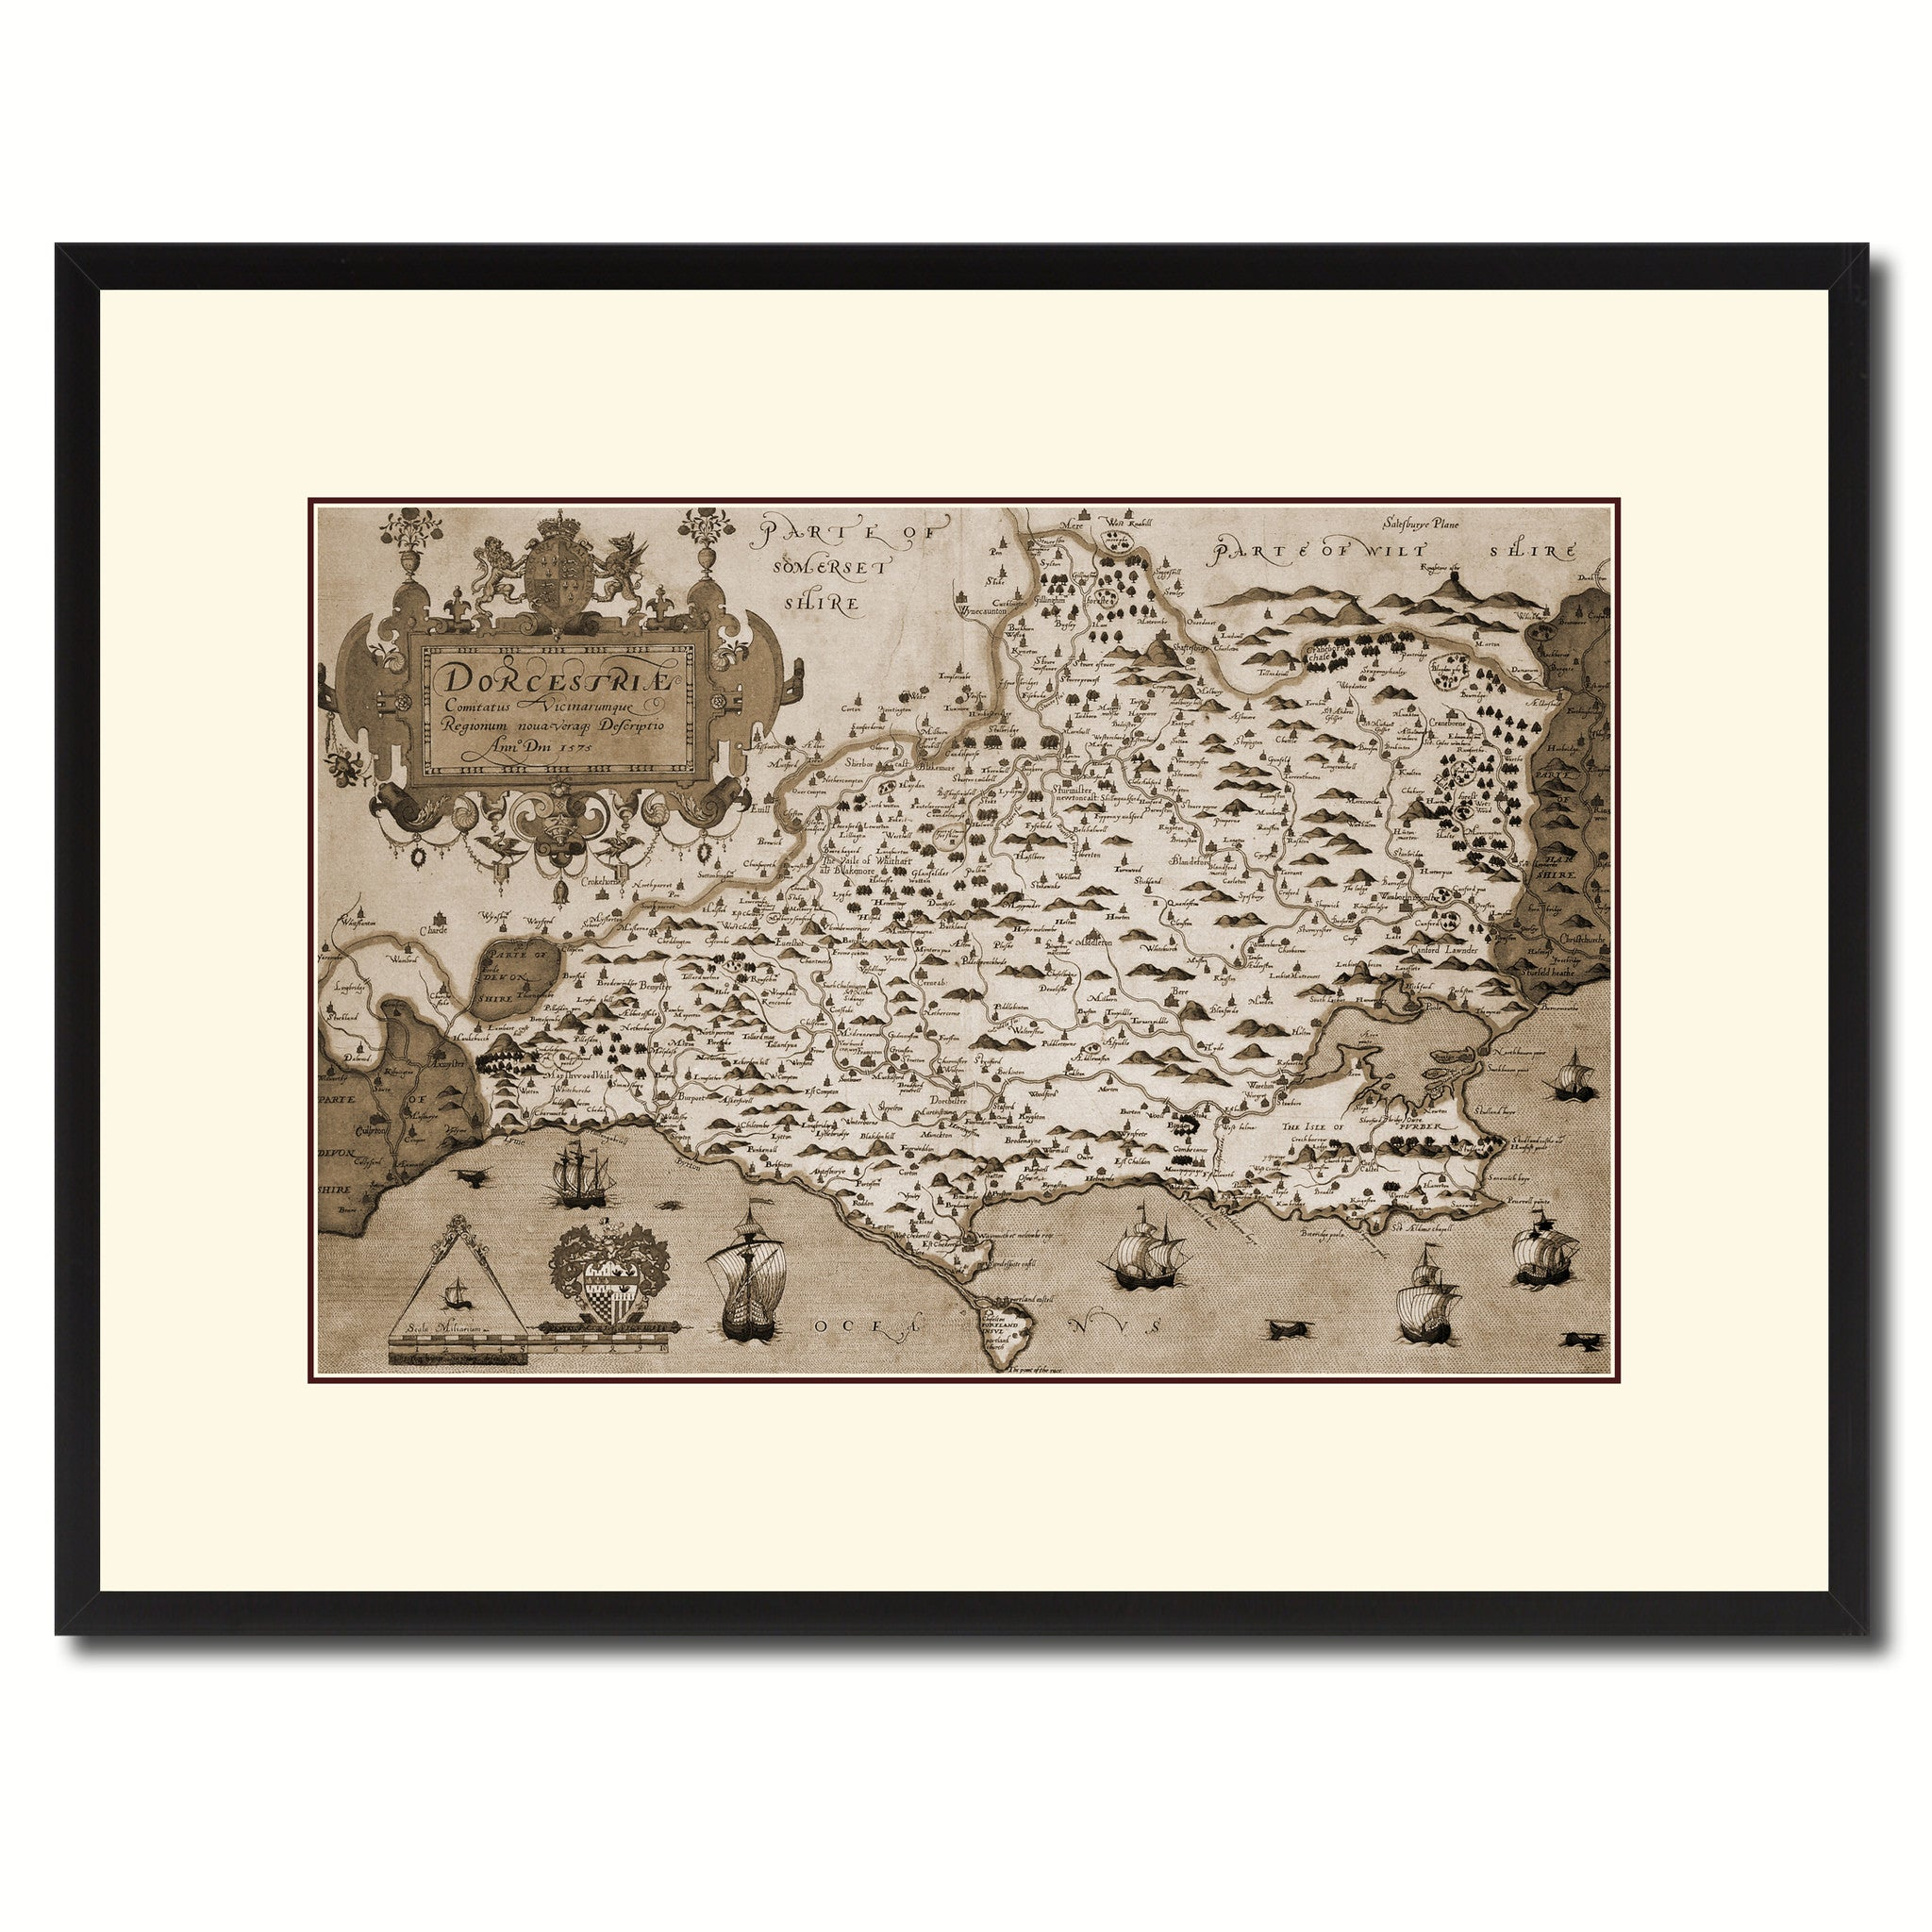 Atlas Of England u0026 Wales Vintage Sepia Map Canvas Print Picture Frame Gifts Home Decor Wall Art Decoration  sc 1 st  SpotColorArt & Atlas Of England u0026 Wales Vintage Sepia Map Home Decor Wall Art ...